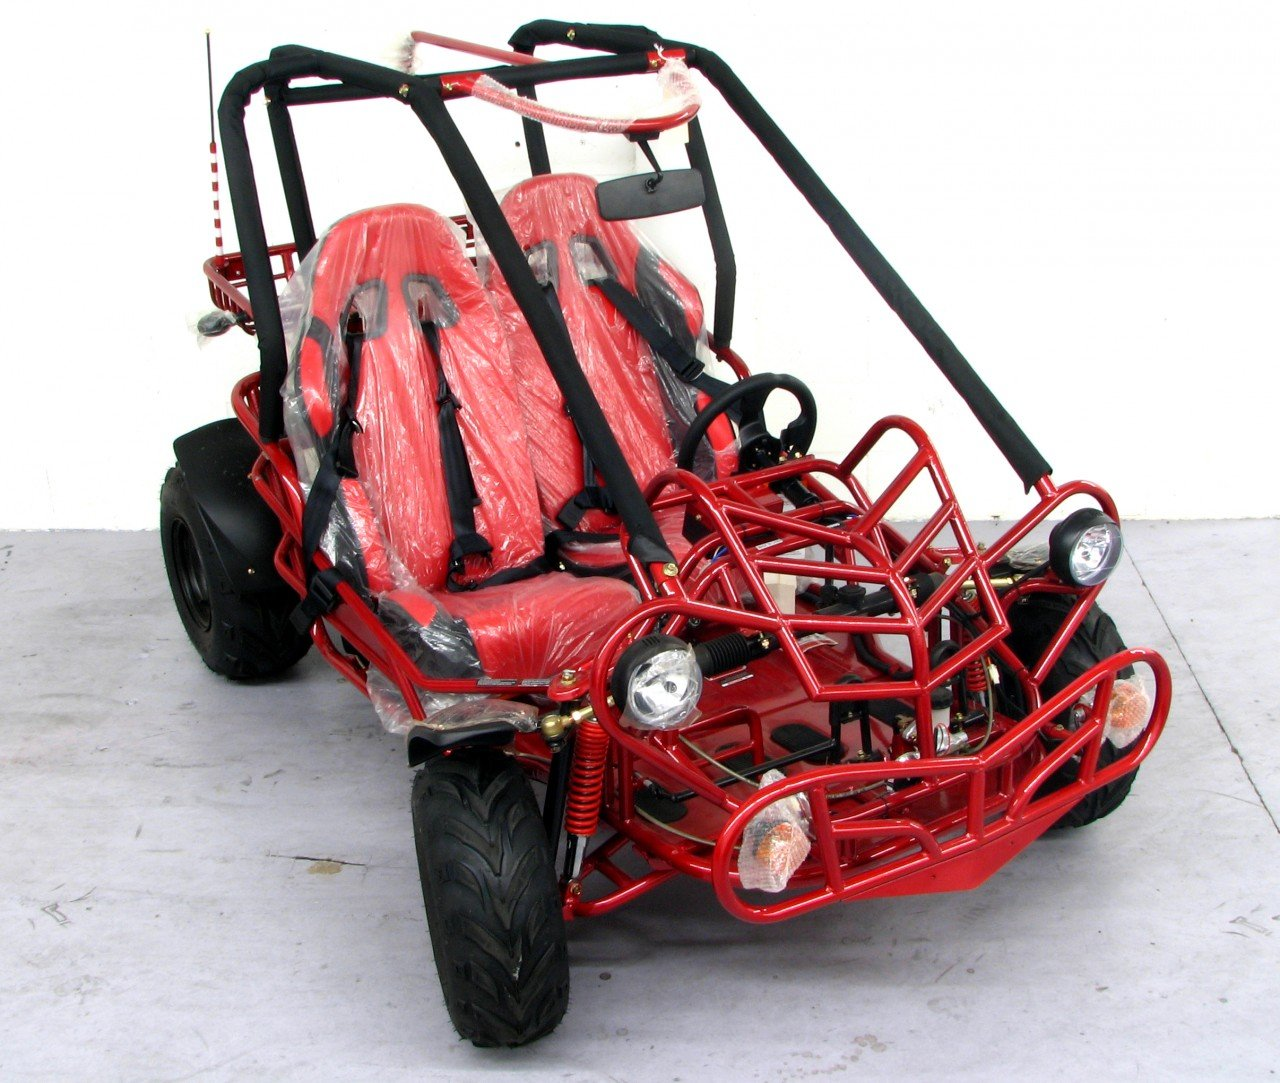 Amazon.com: Kandi 150cc 2-seat Go Kart (KD-150GKC-2): Sports & Outdoors